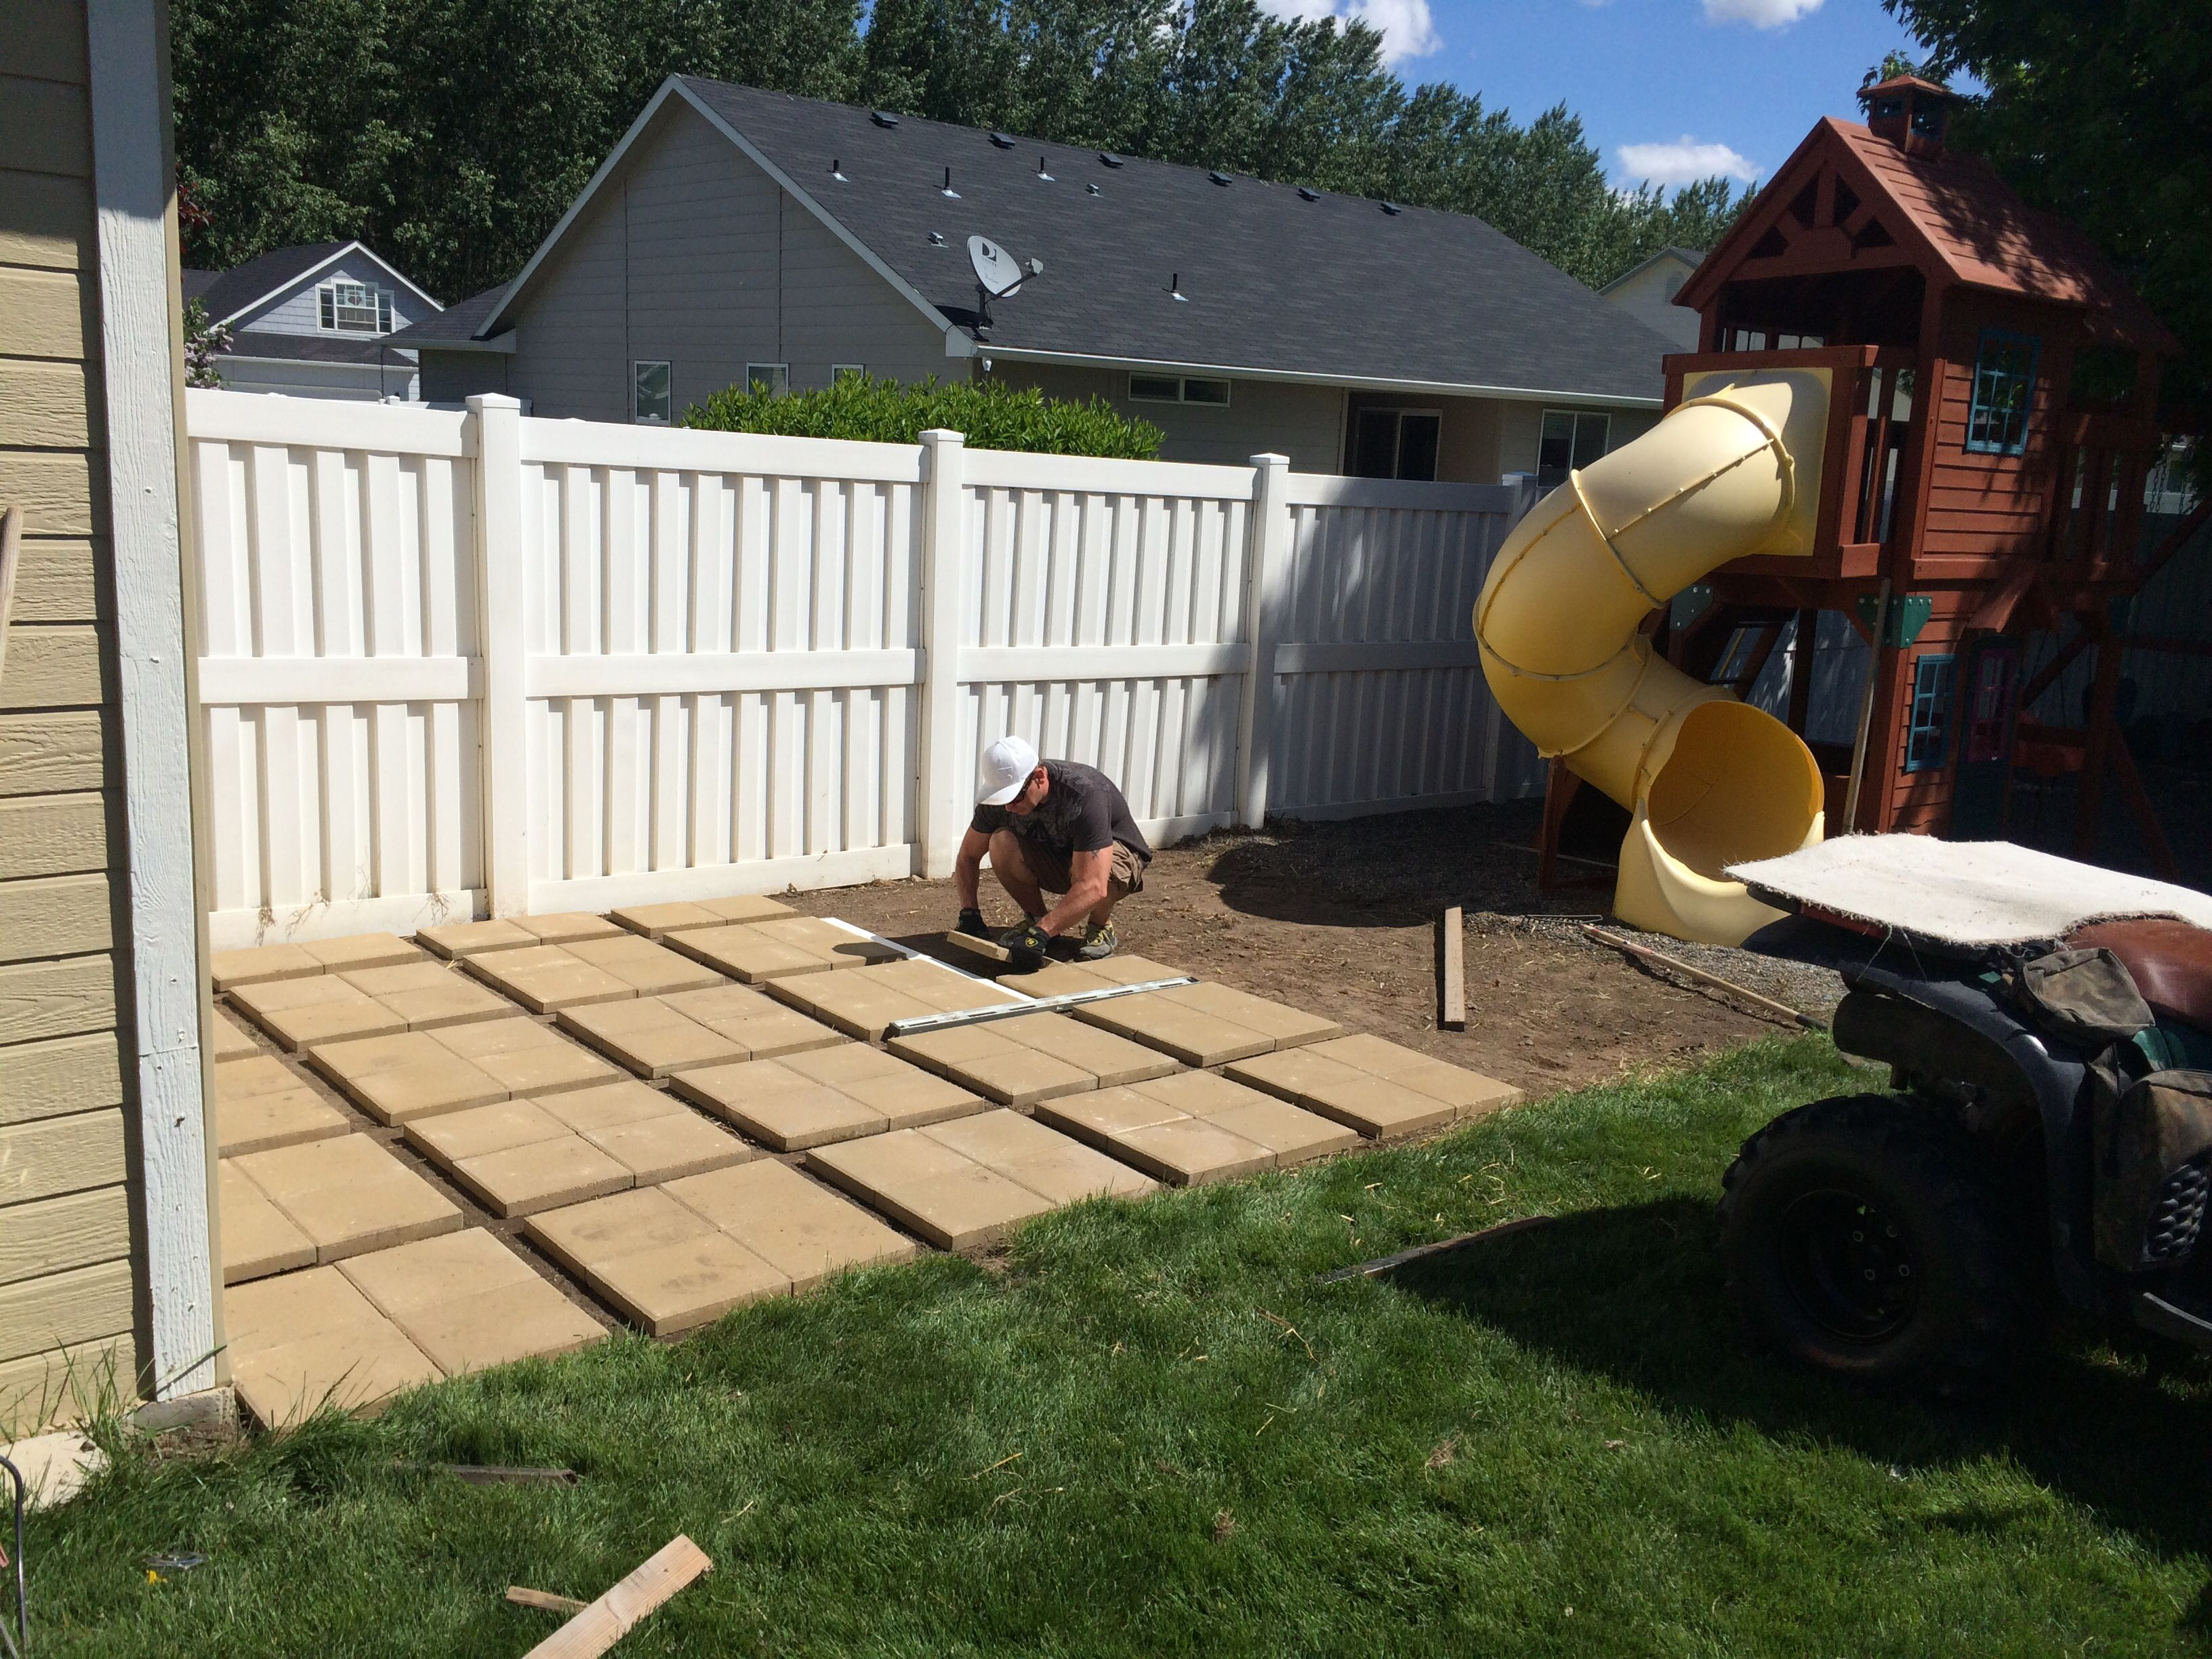 Build Your Own Patio! Pavers In Sets Of Far Less Expensive Than Pavers.  Just Evenly Spaced And Set With Pea Gravel! This Was An Inexpensive And  Temporary ...